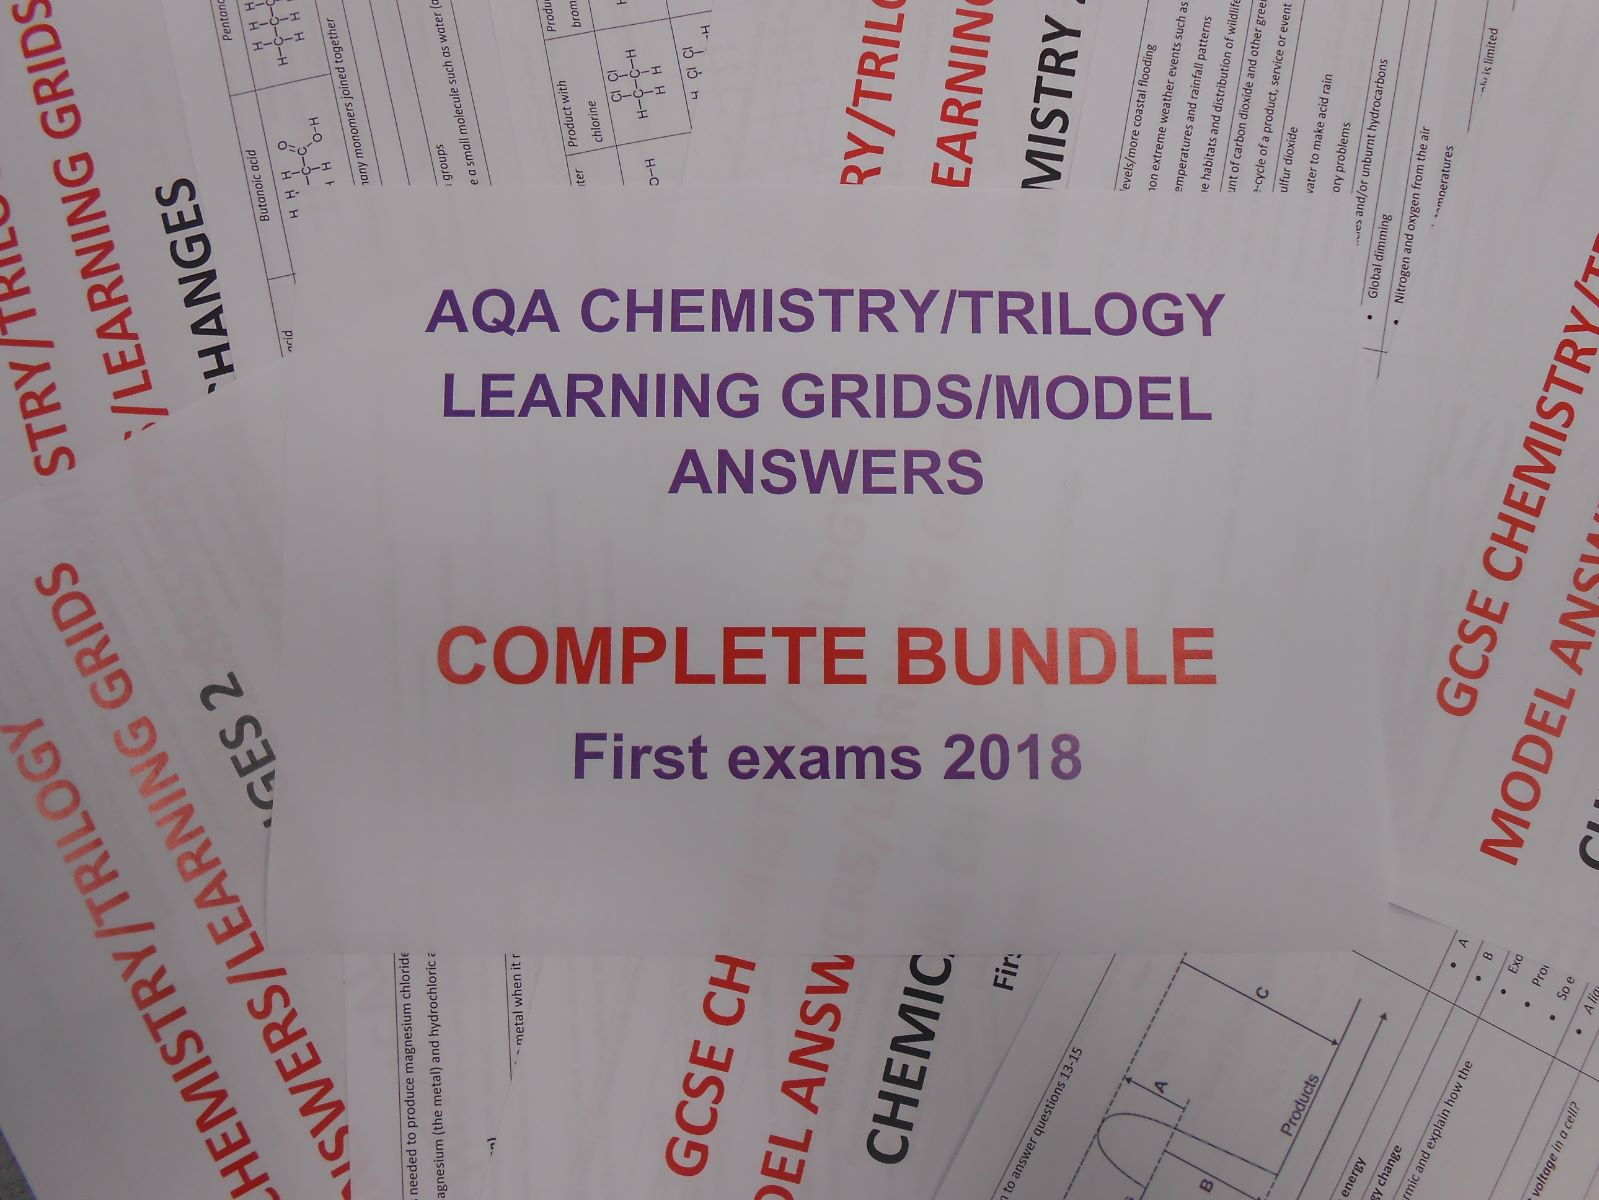 AQA 2018 GCSE Chemistry/Trilogy Learning Grids/Model Answers